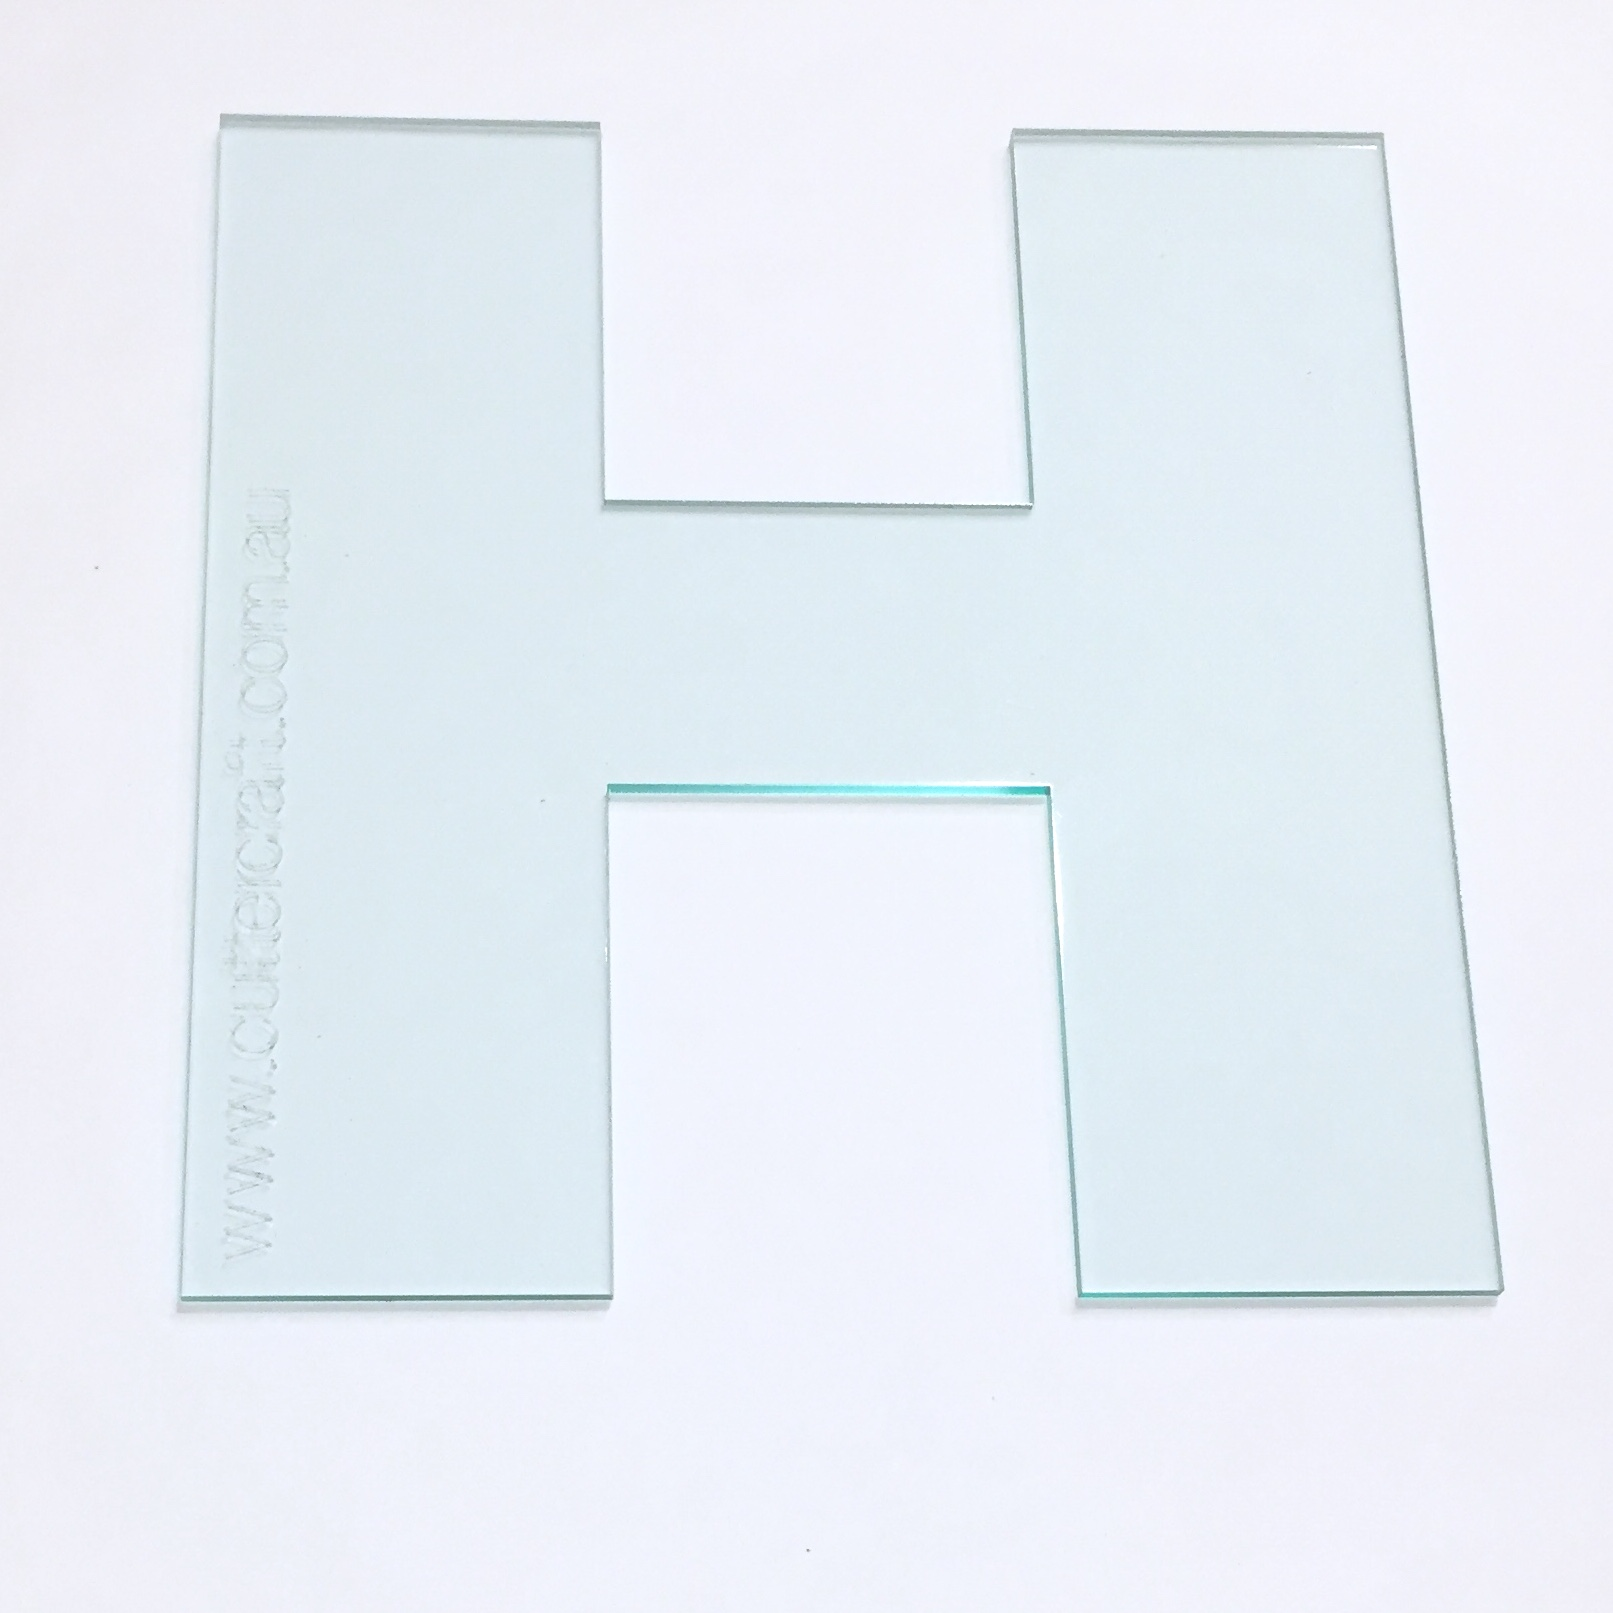 bfe019576b9 Letter H acrylic large template 29cm high ~ wide font - CutterCraft